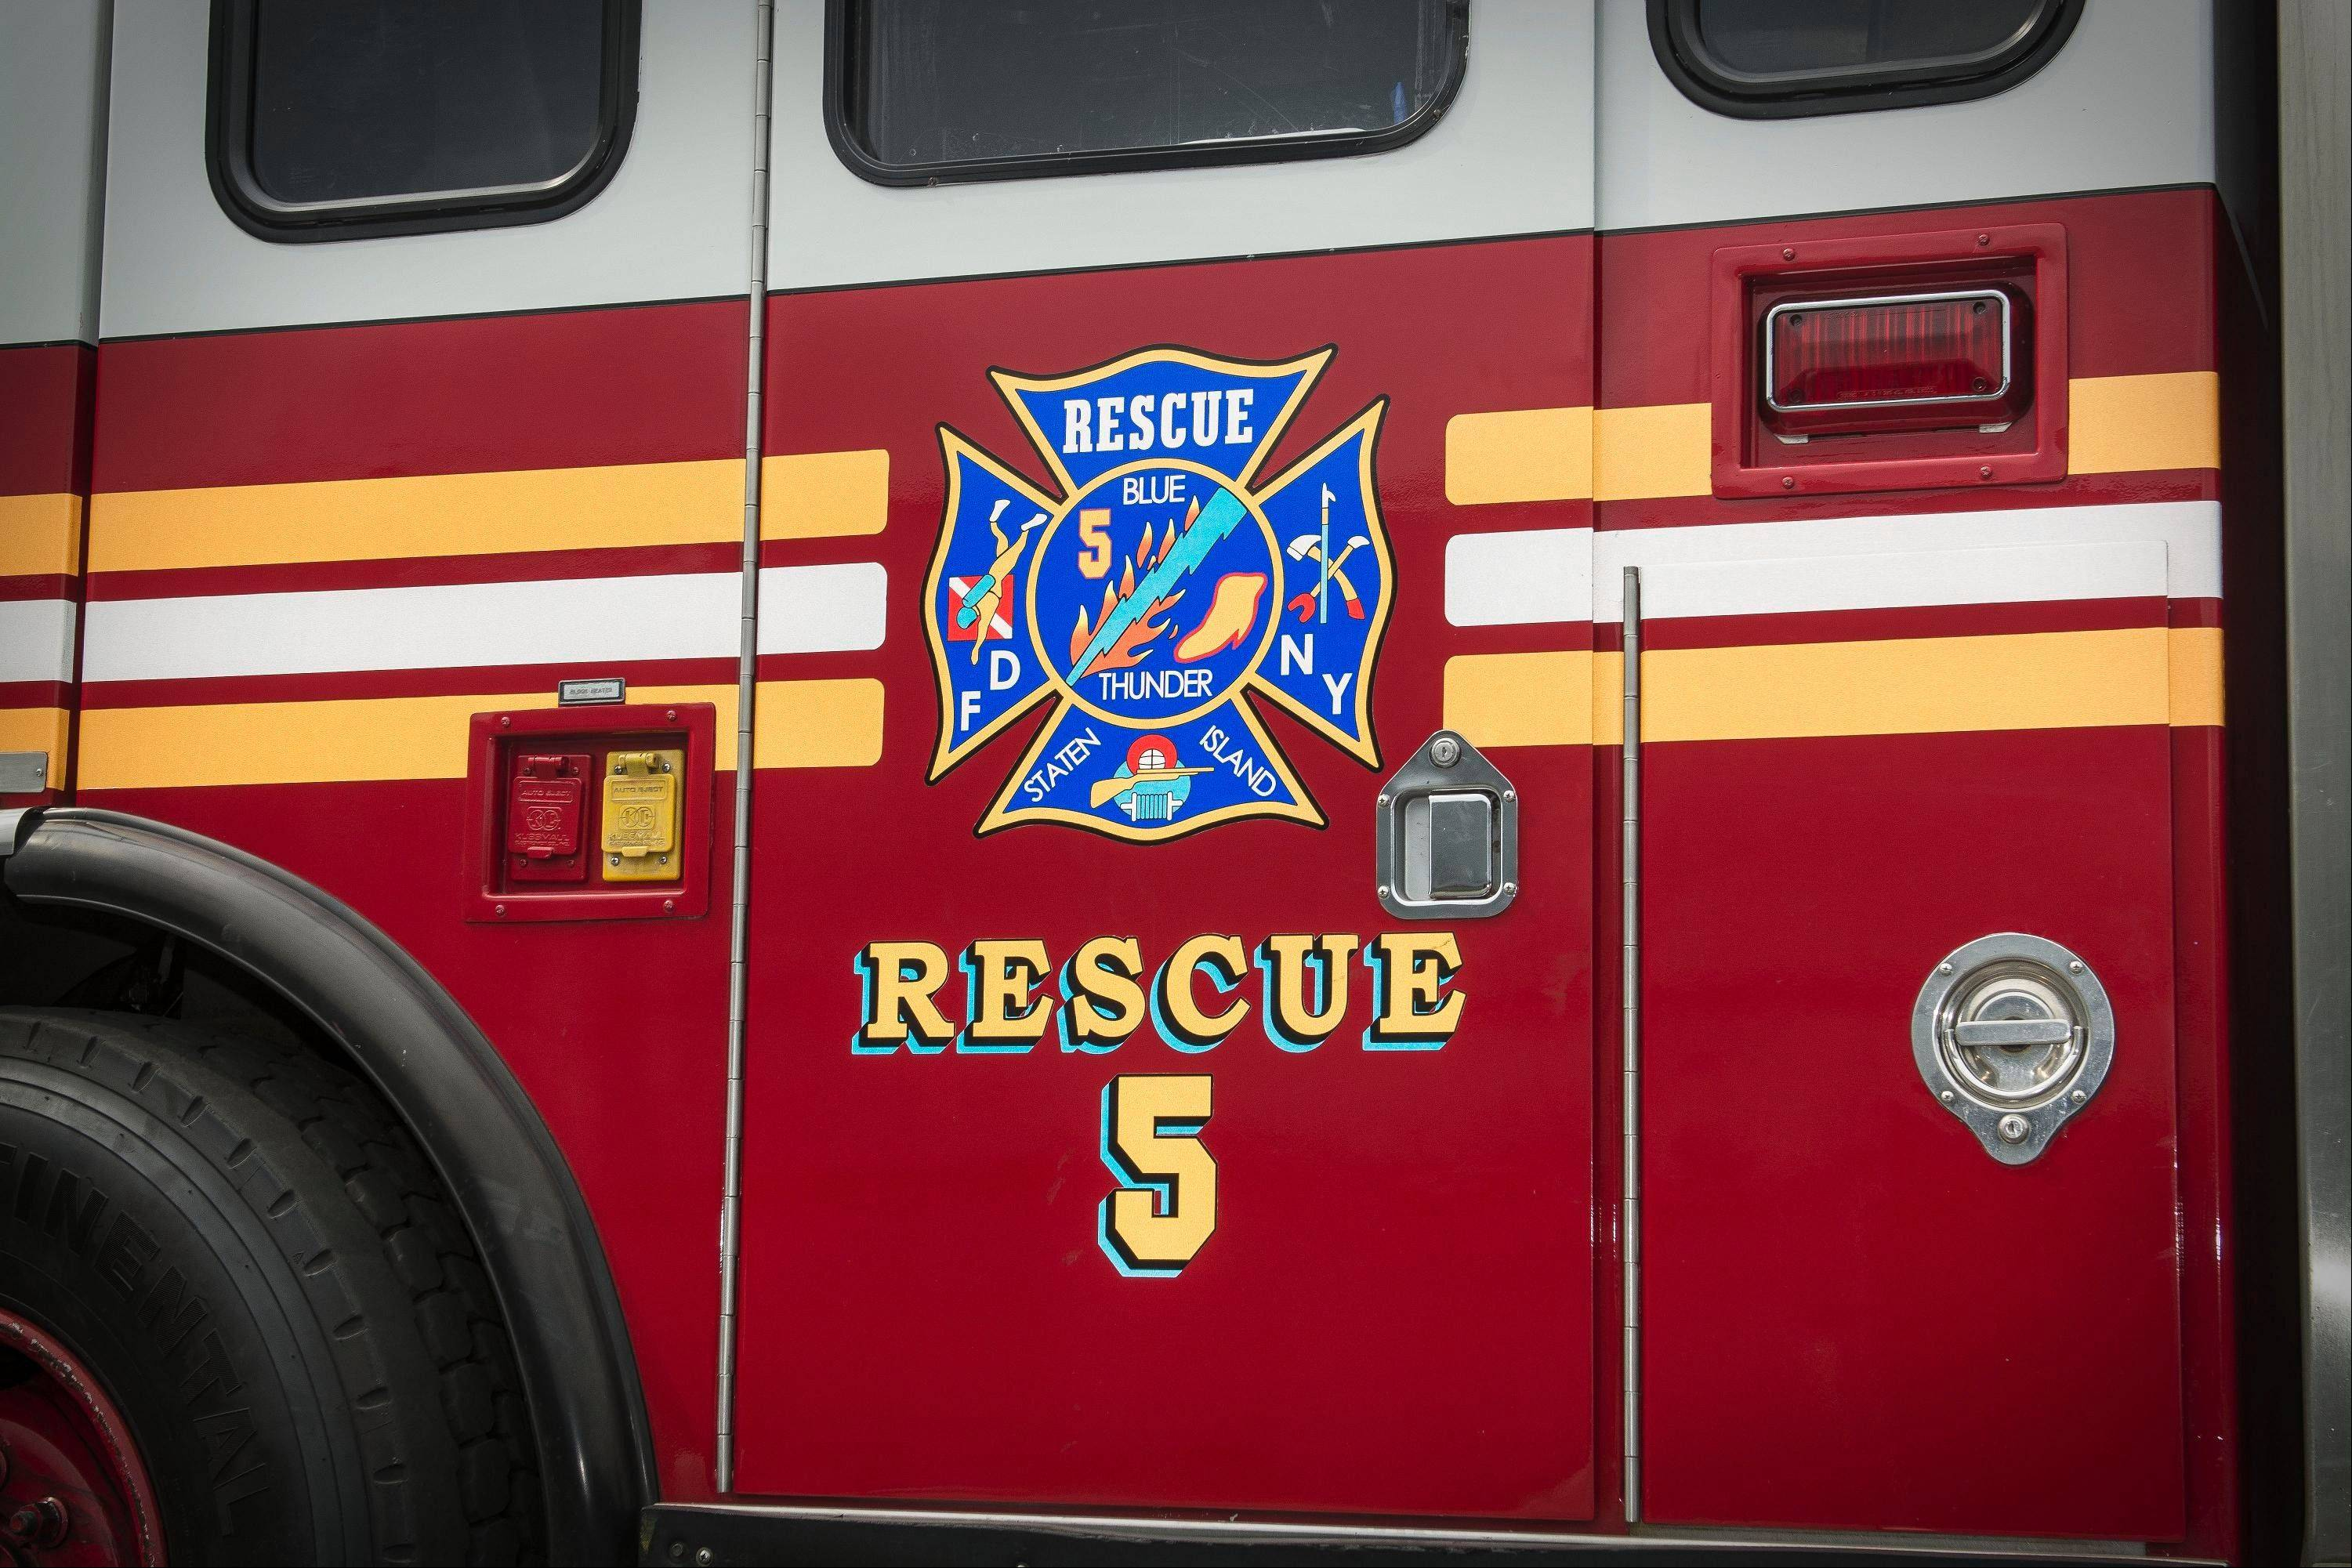 Rescue 5 belonged to the Staten Island Rescue Company, which lost 11 firefighters on Sept. 11.